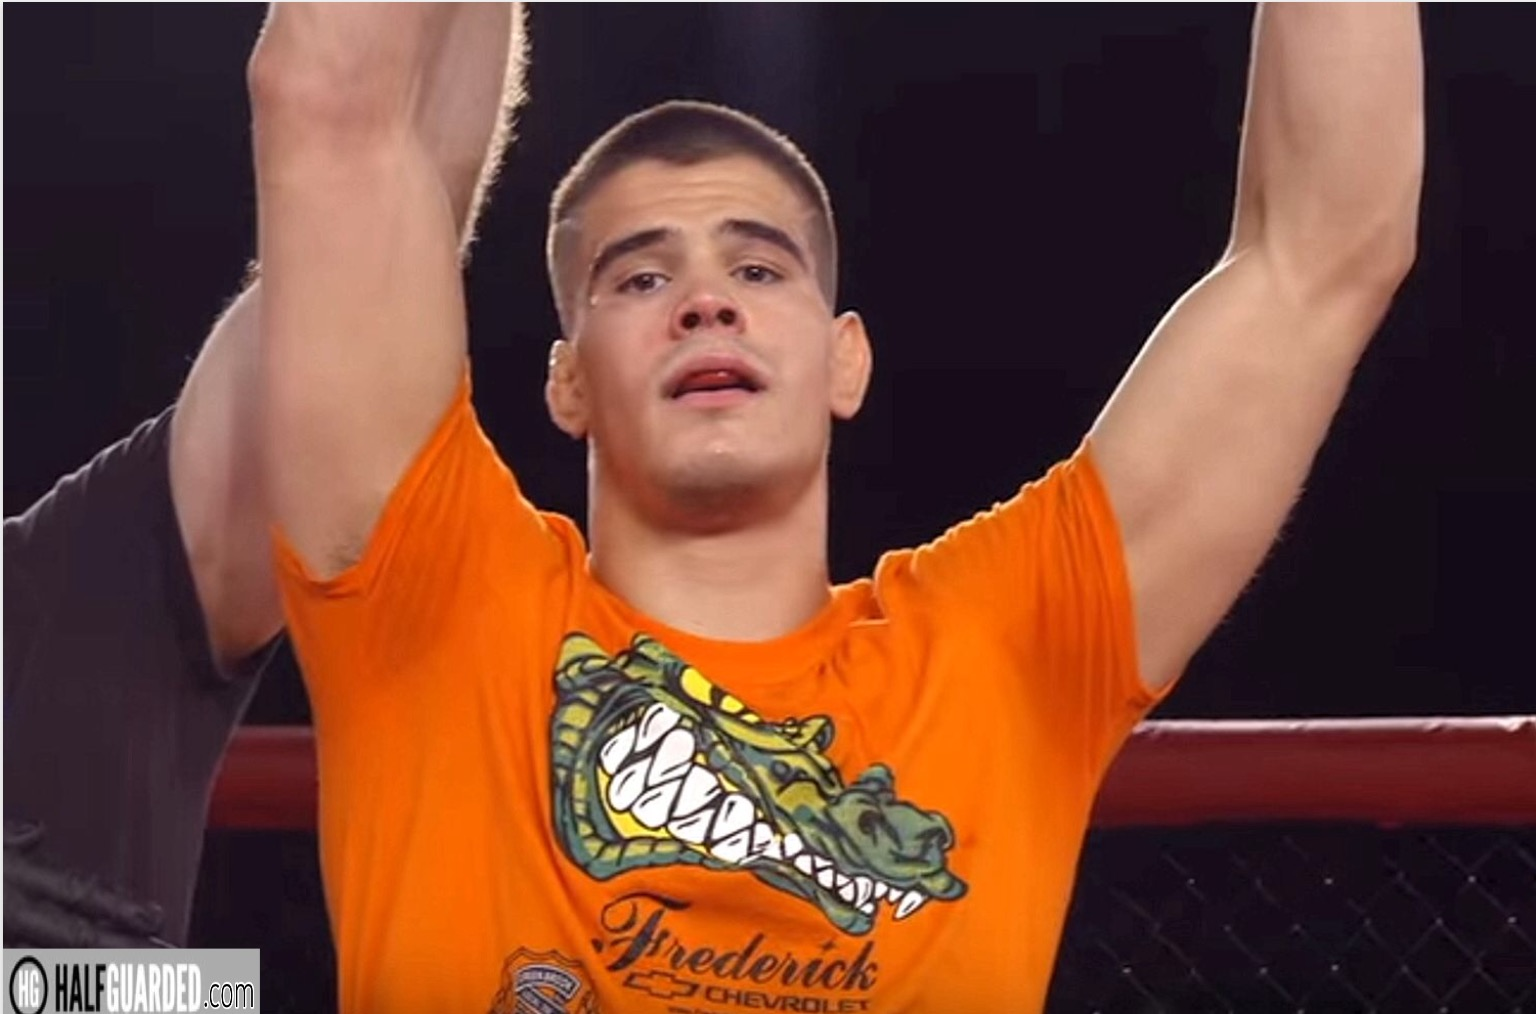 Mickey gall opponent